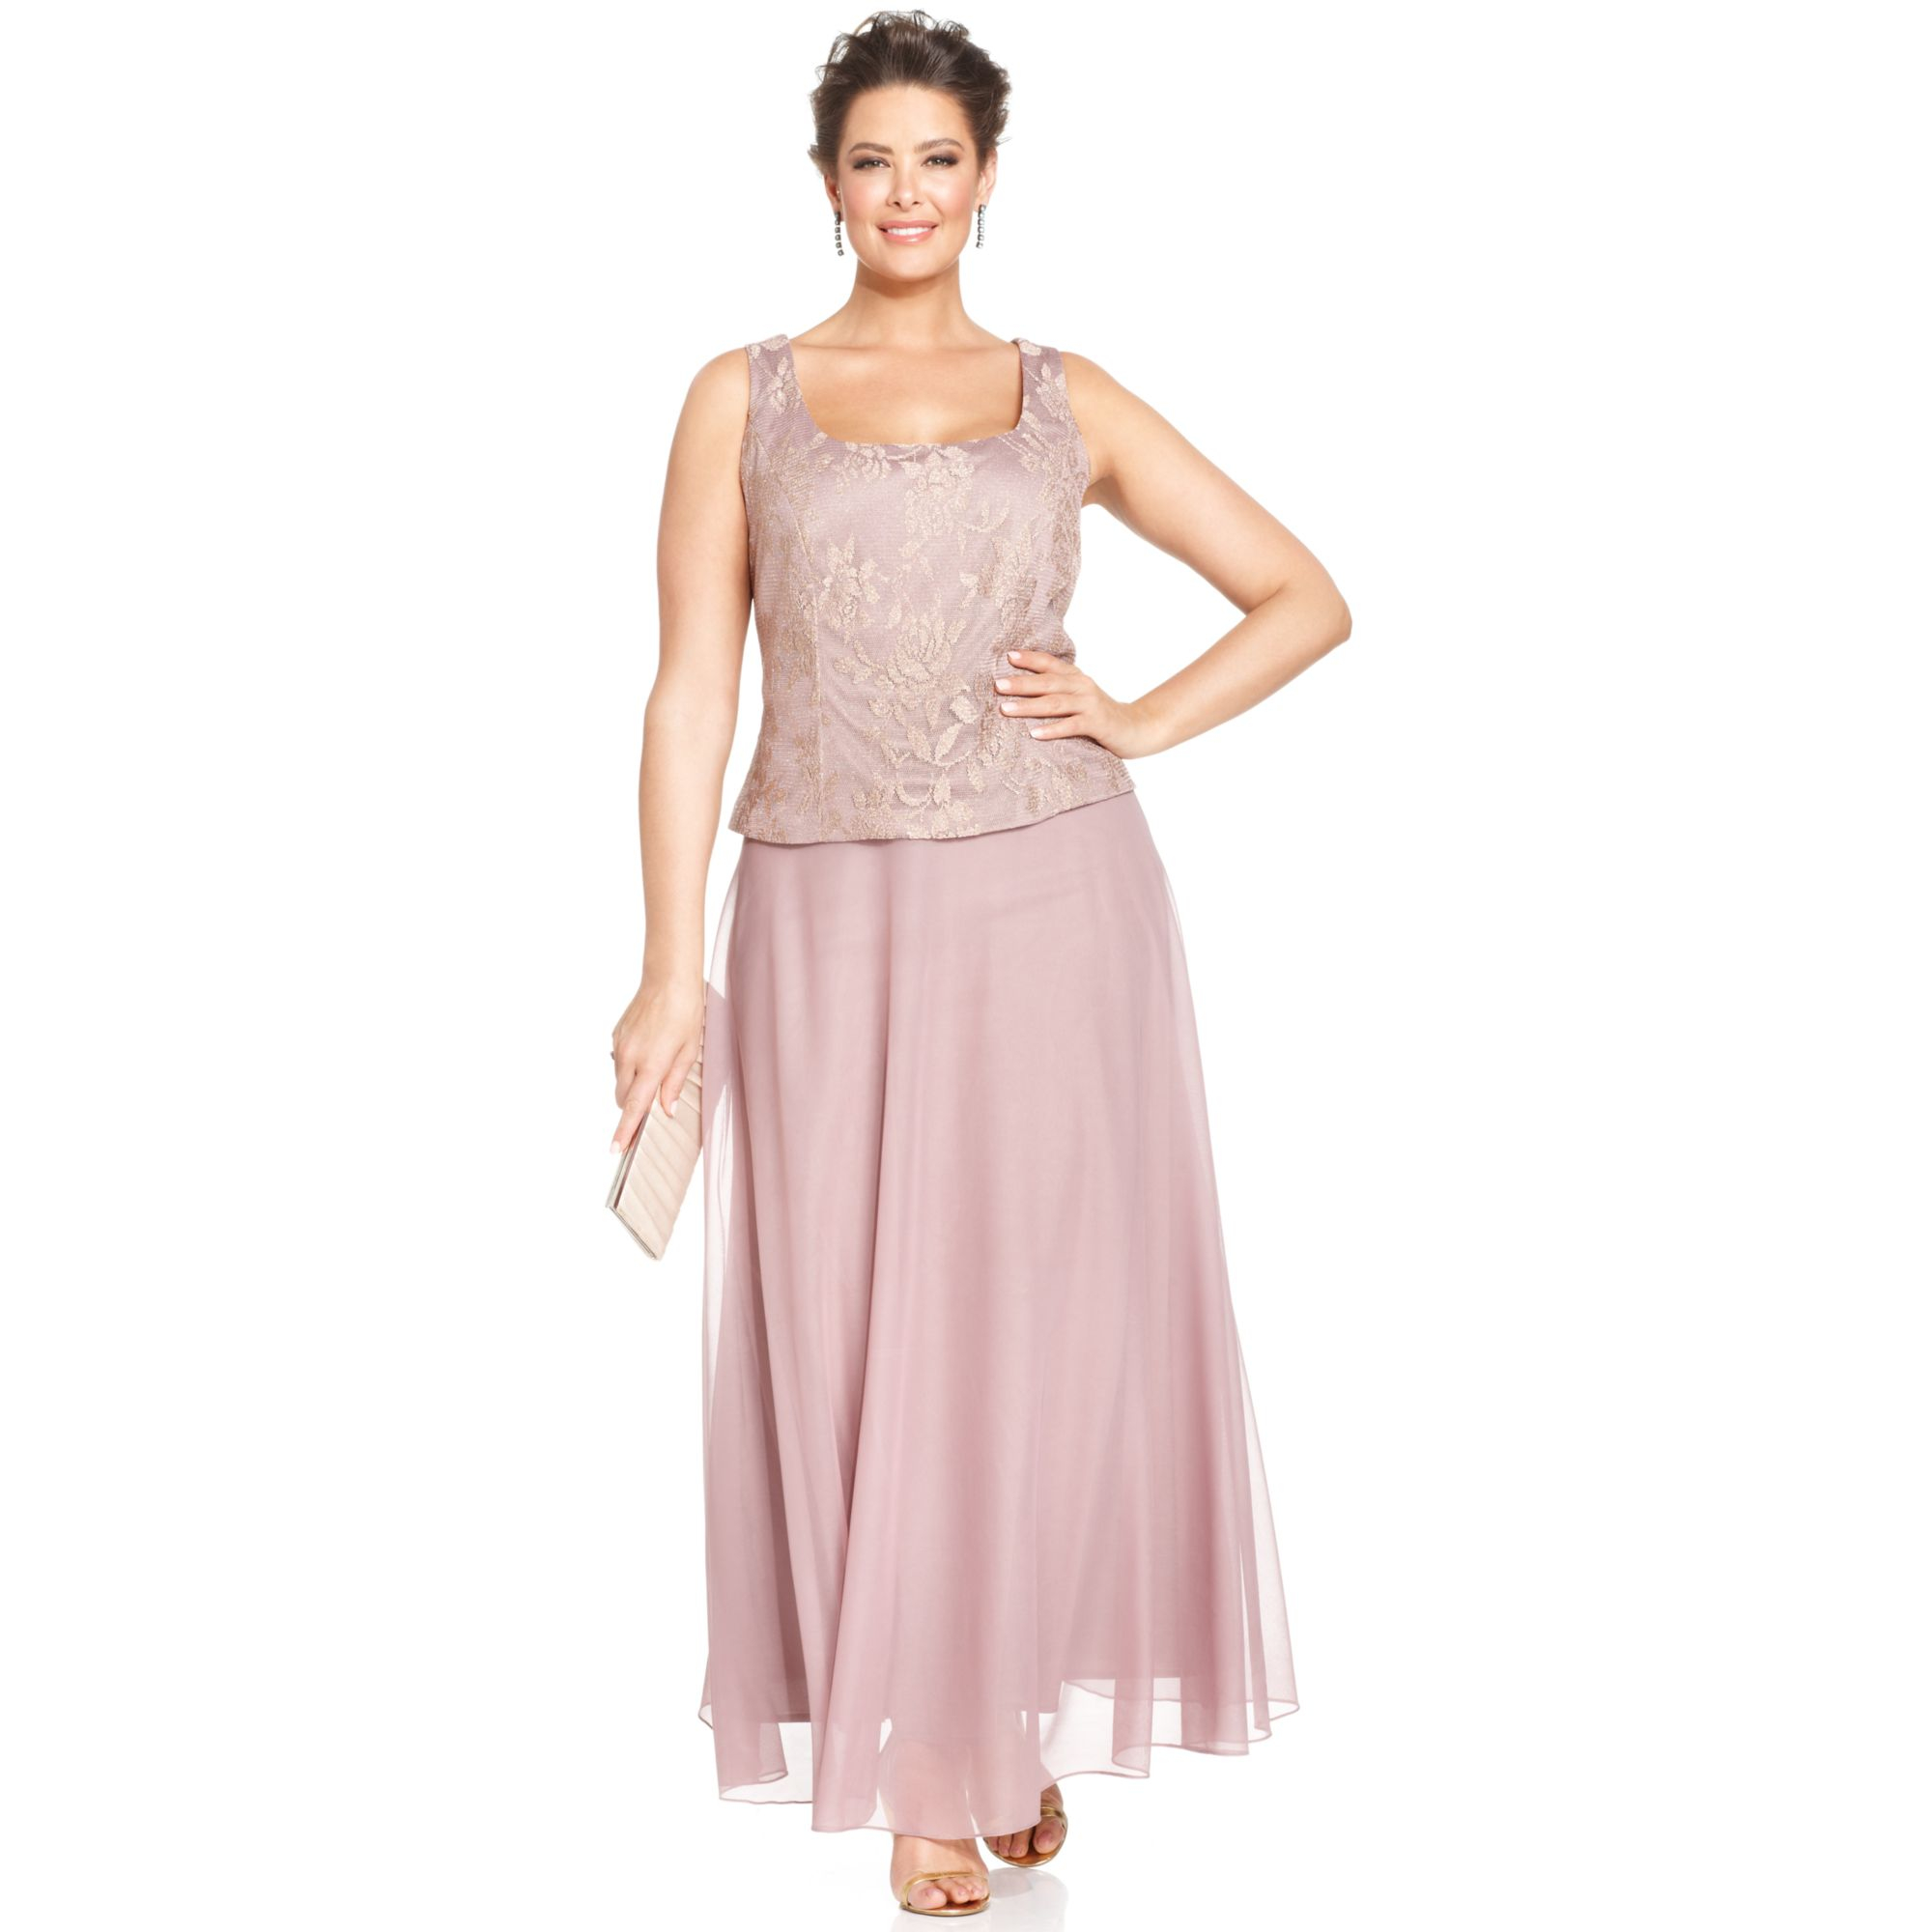 Patra Draped Evening Dress